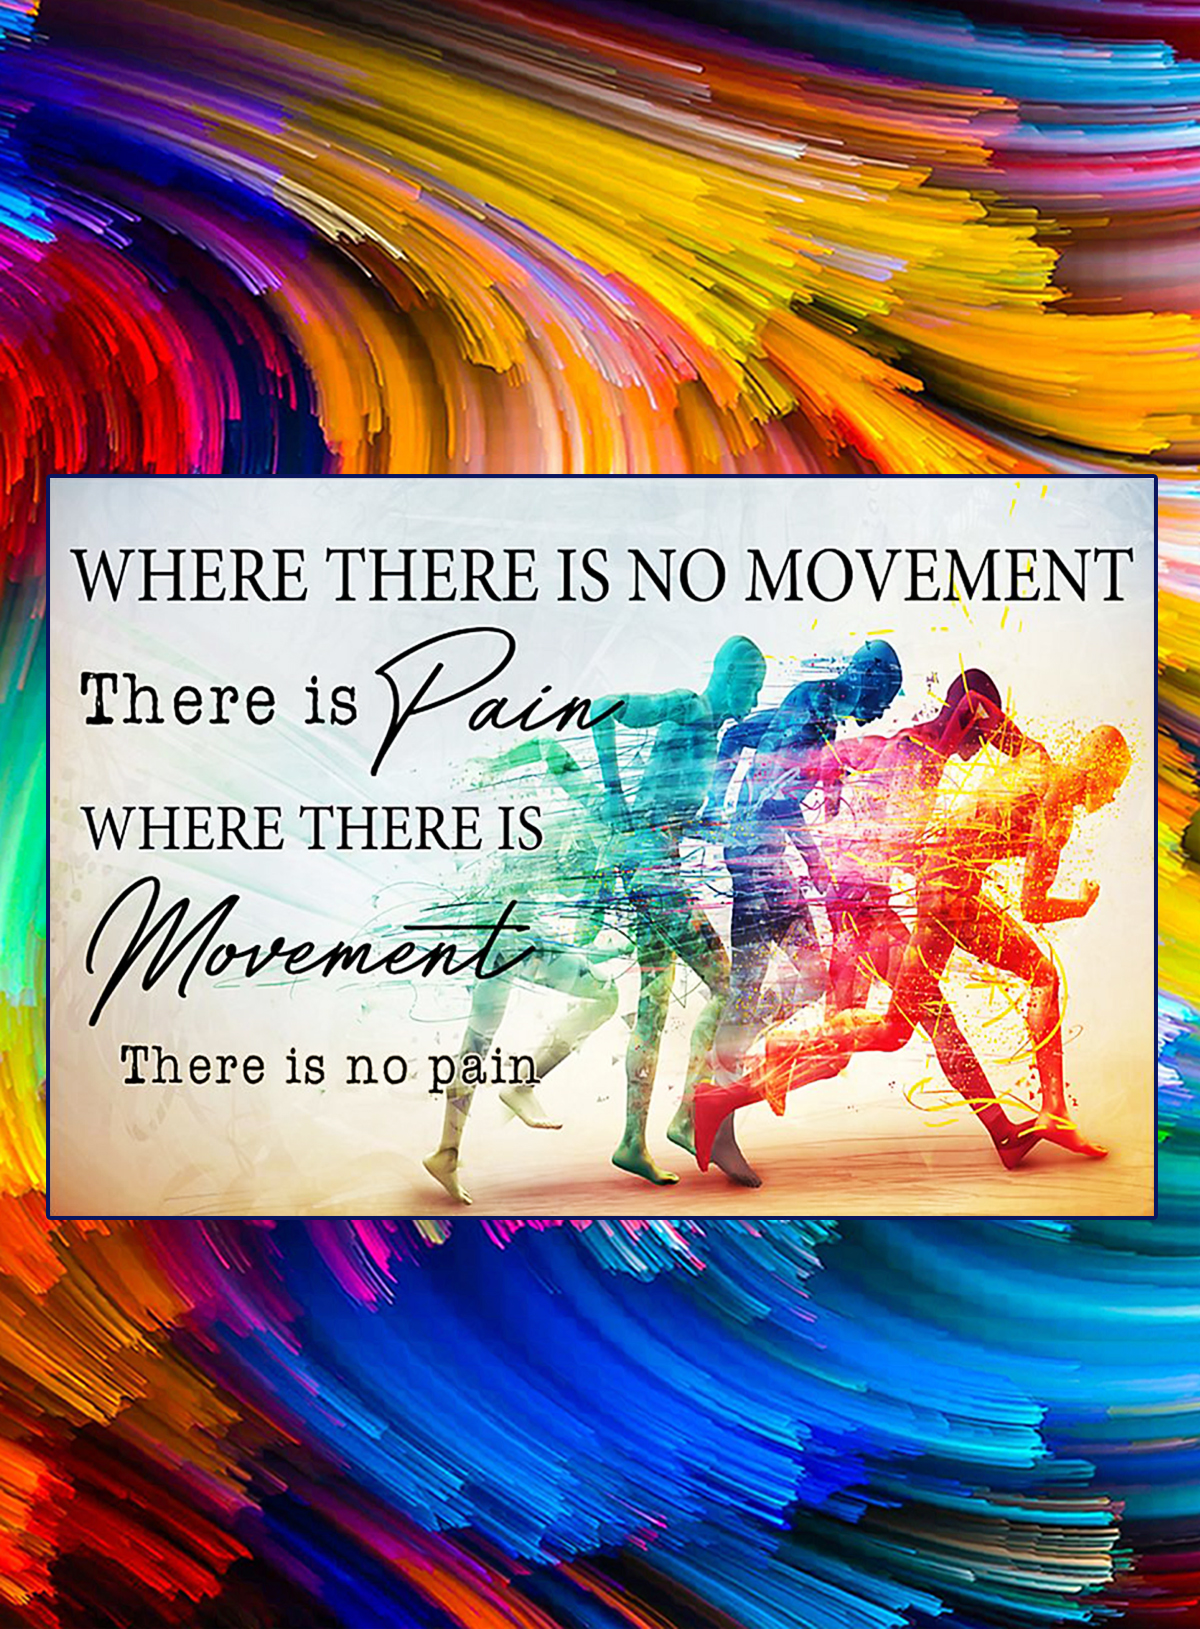 Where there is no movement there is pain where there is movement there is no pain poster - A4